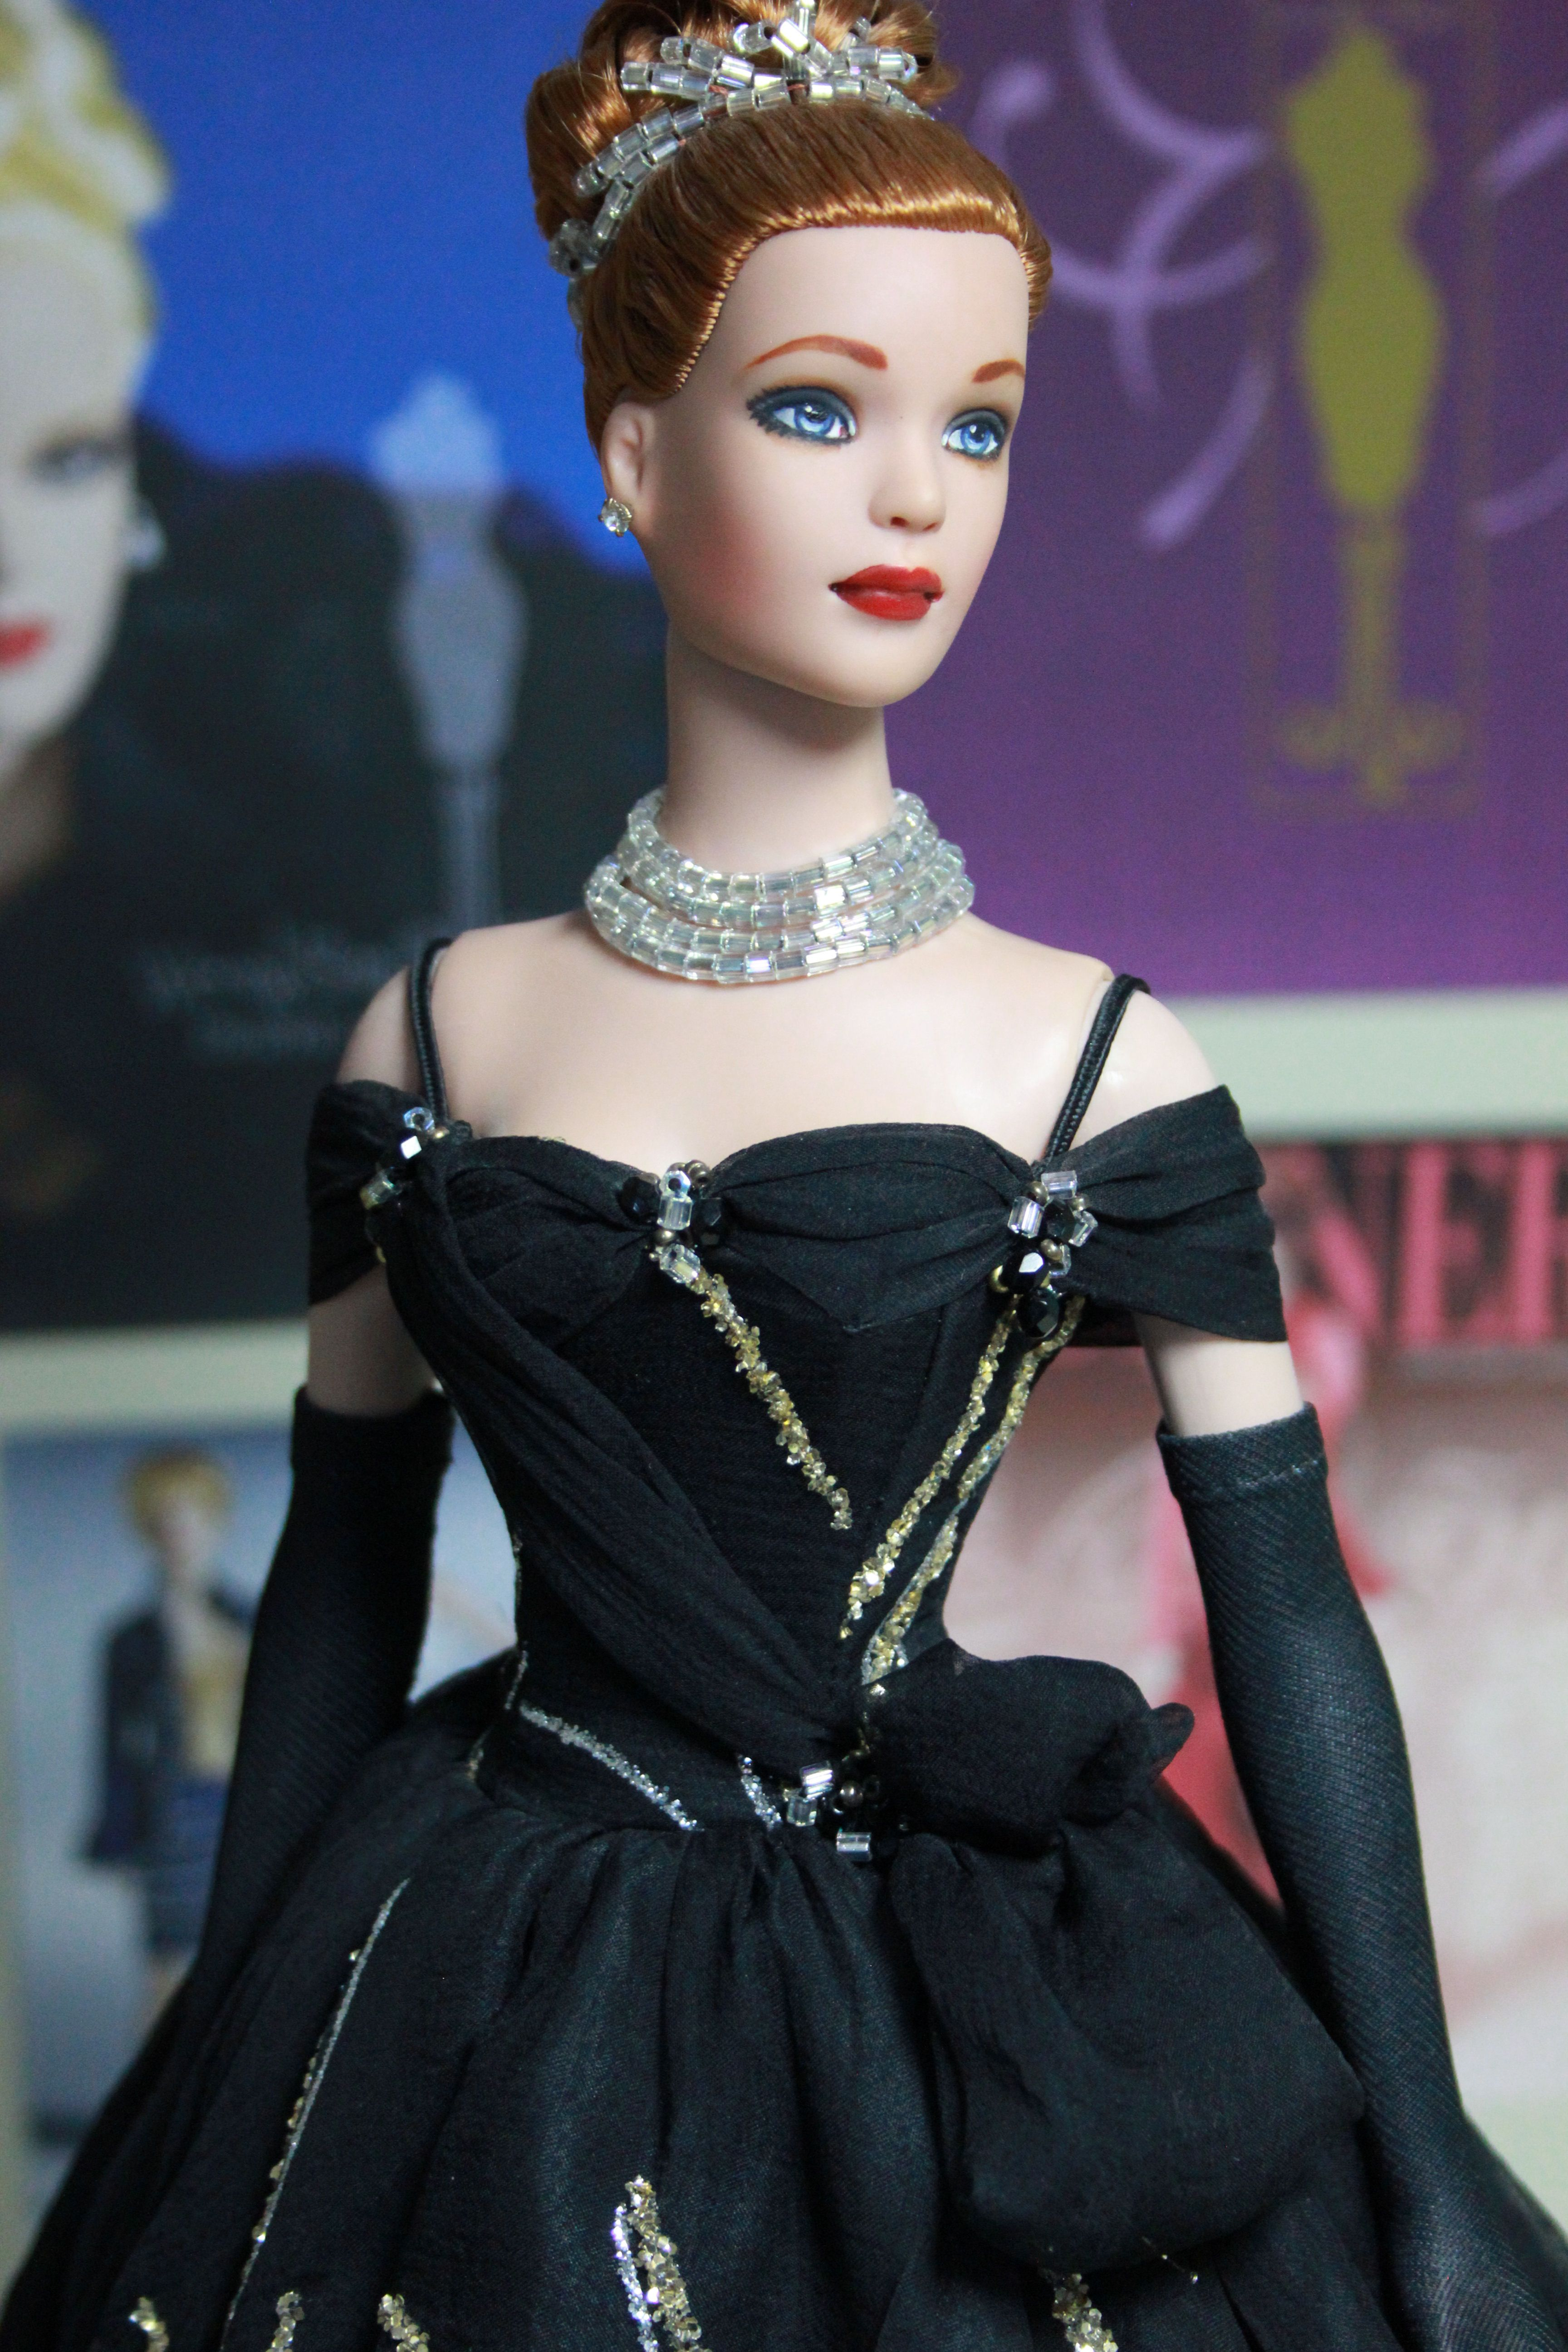 OOAK Tyler Wentworth - Gown & Make-up by Molly Baver (one time Design Director at Tonner Doll company)